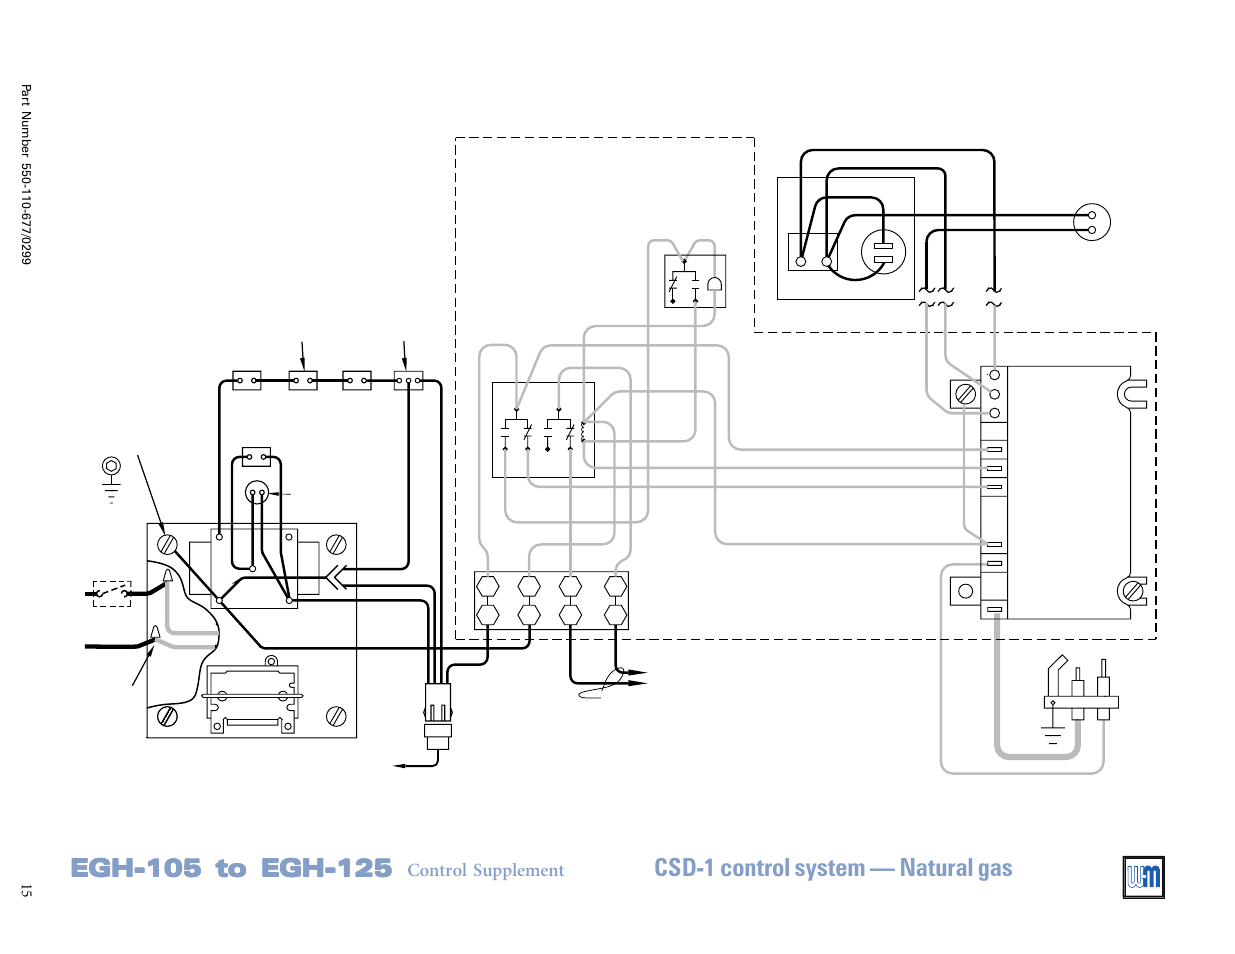 Schematic Wiring Diagram Control Supplement